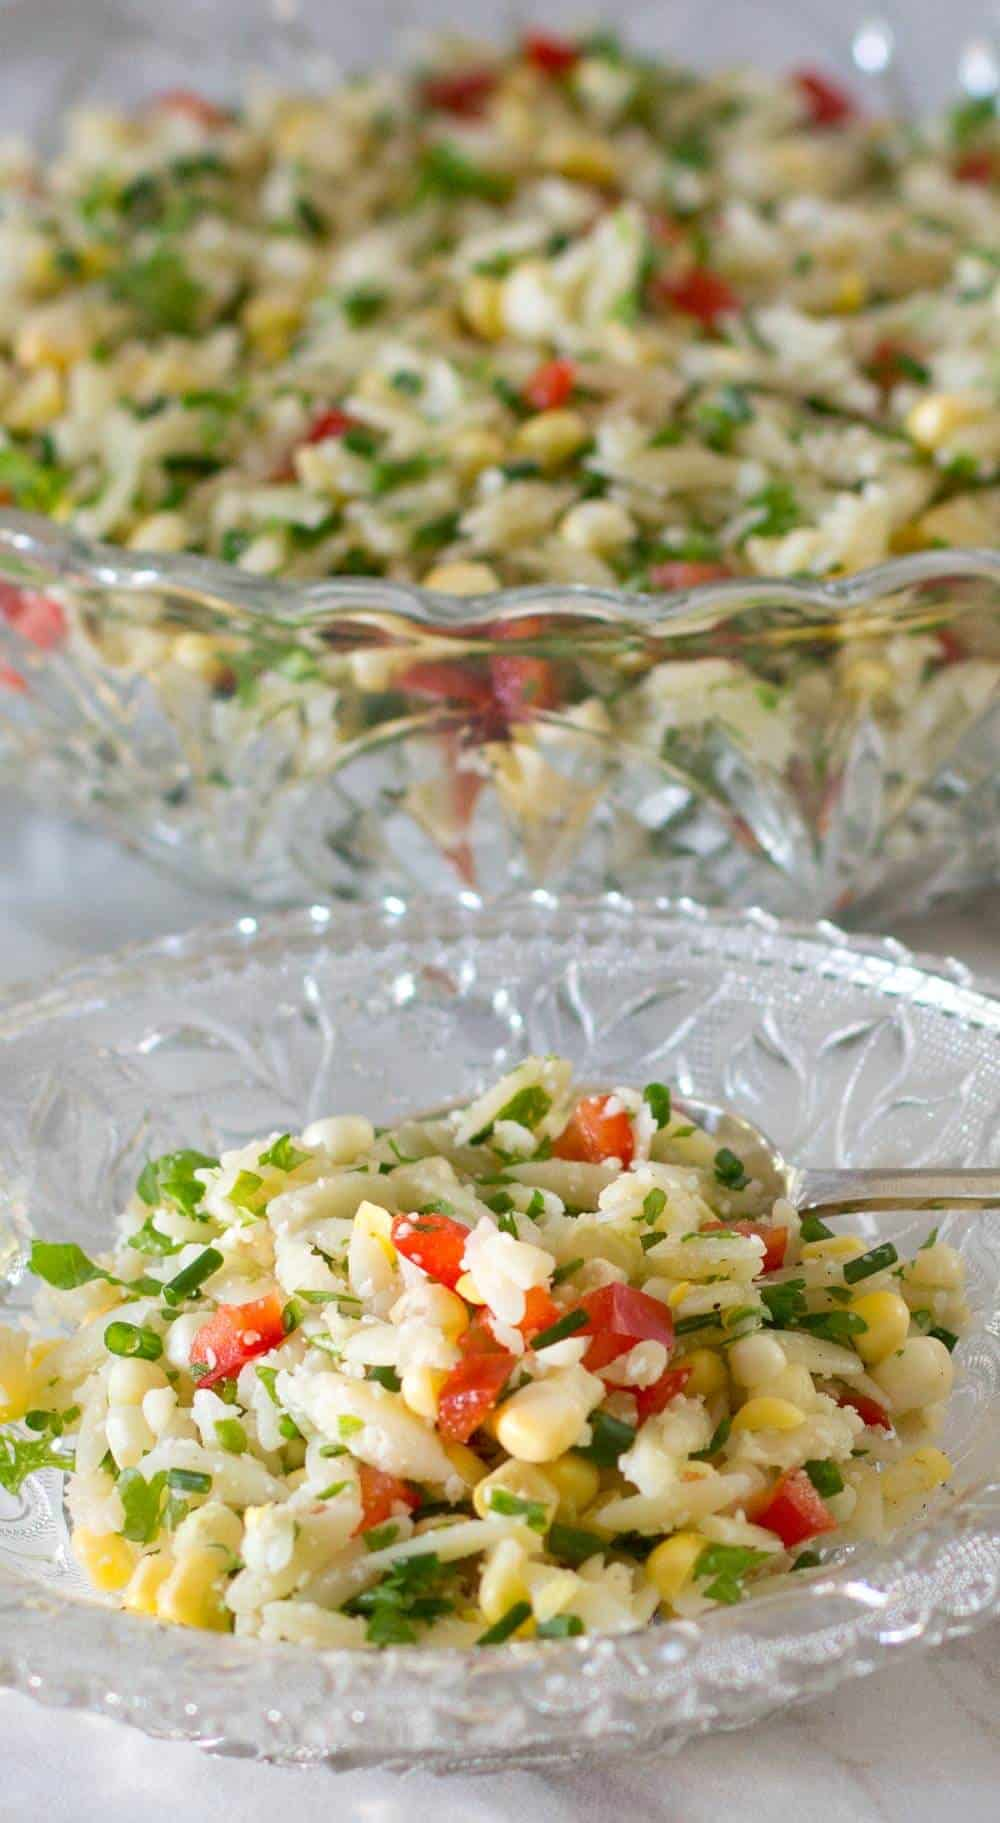 Crunchy colorful orzo salad, ready to eat.